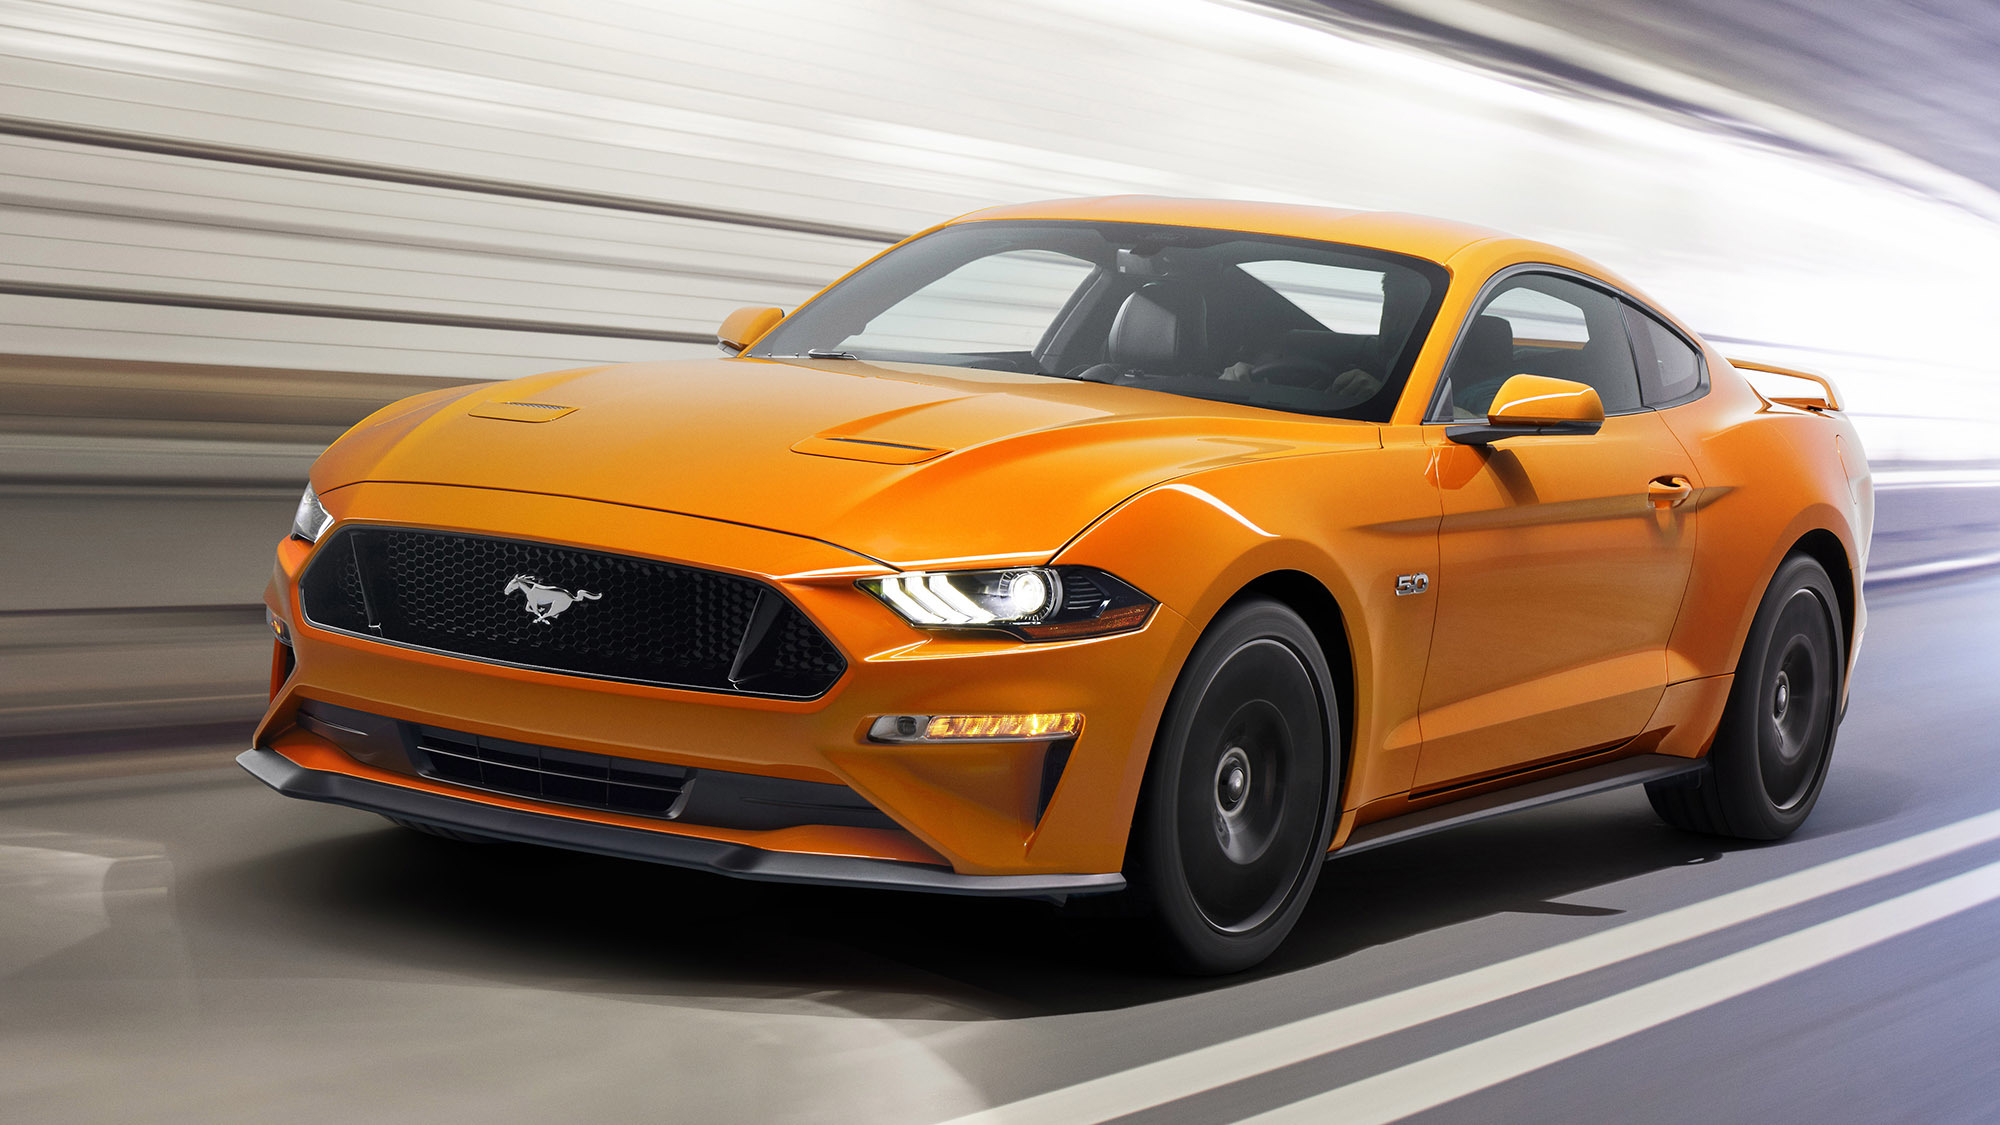 The 2018 Mustang GT Has Arrived And It Is Fast As Ever - Moto Networks